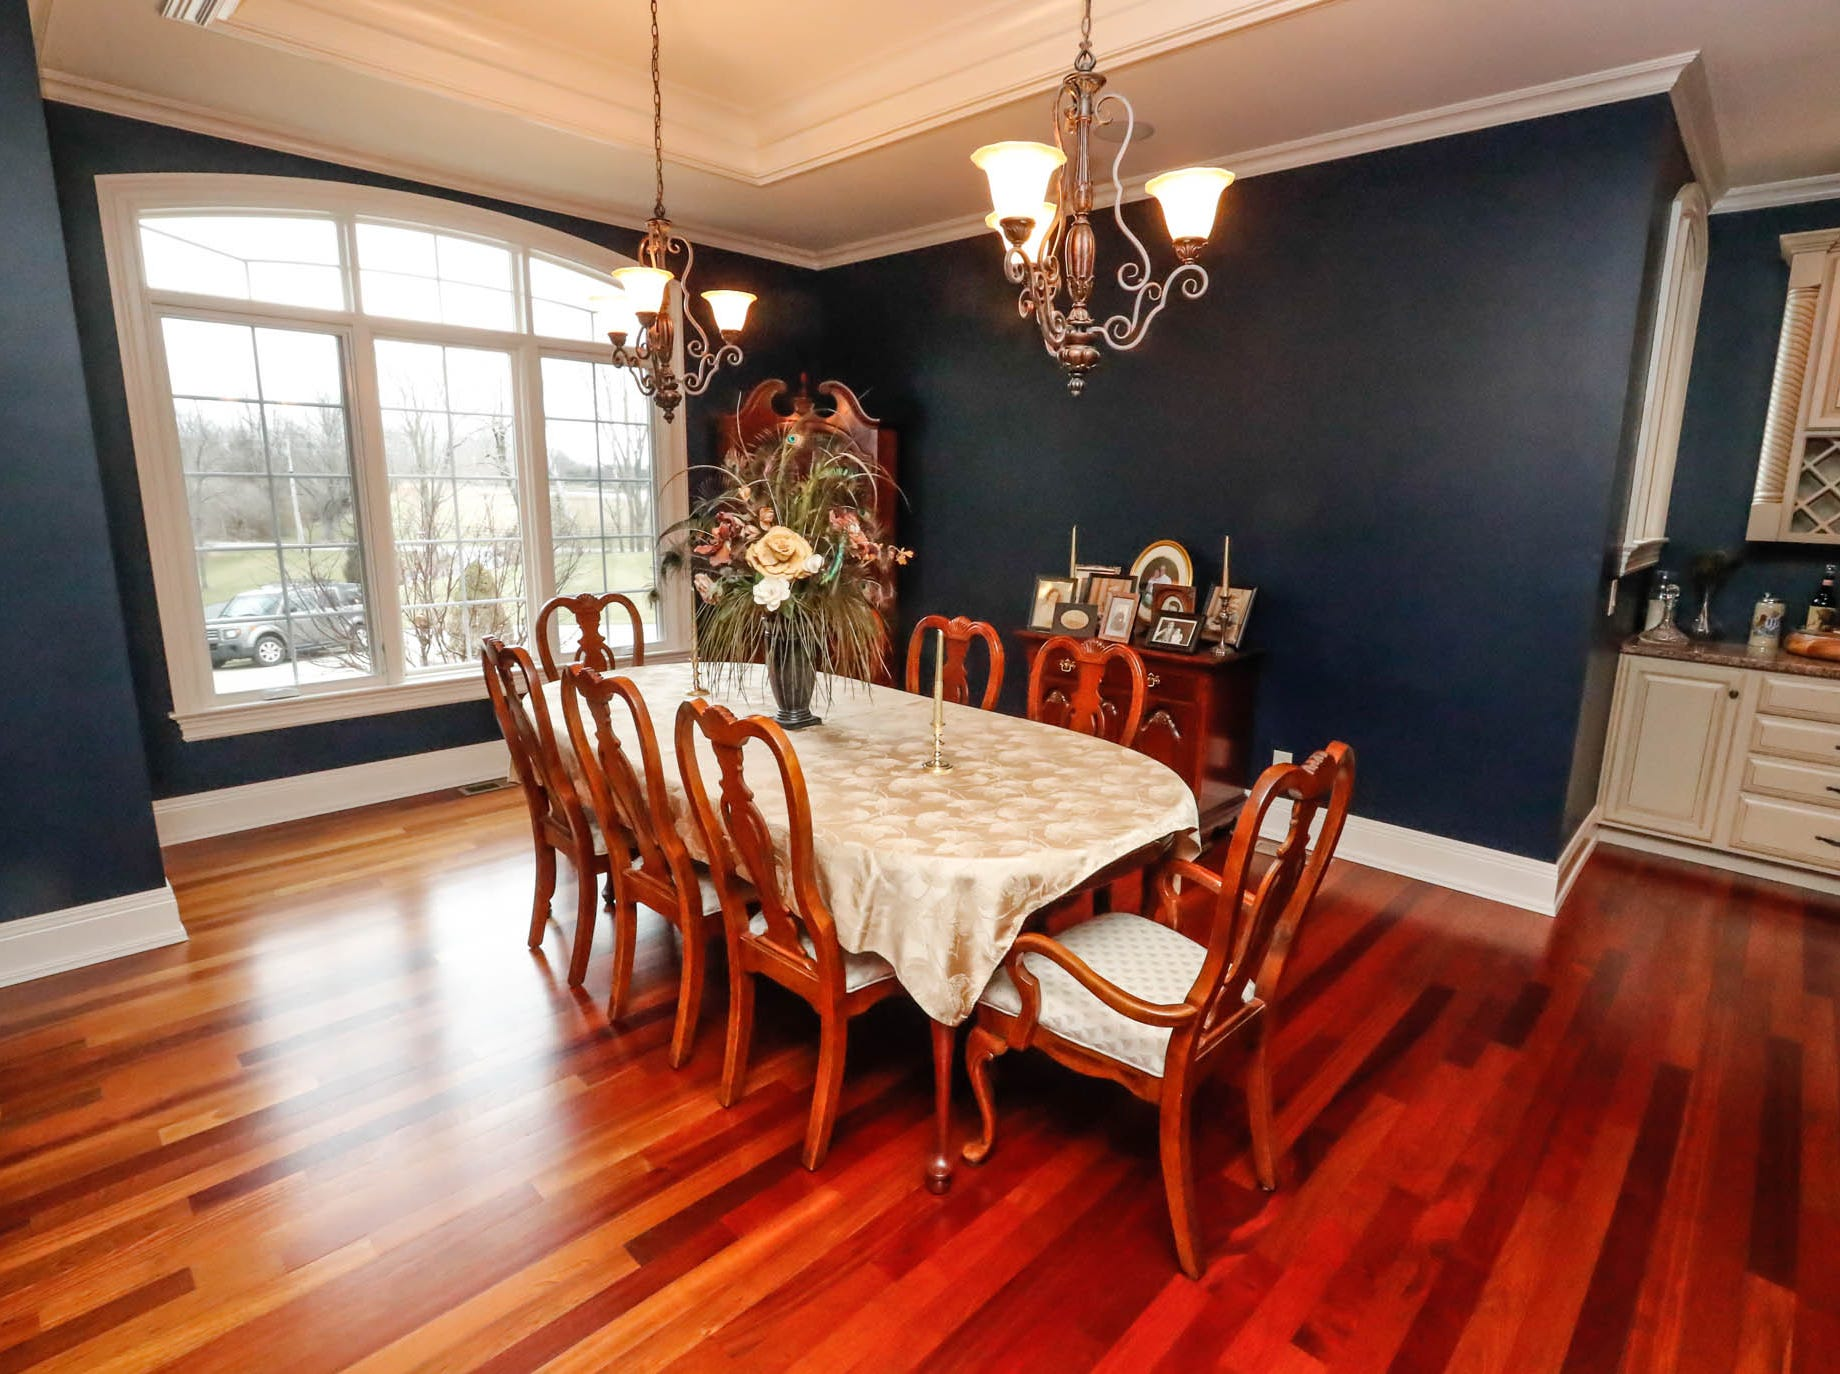 The dining room features an open plan and butlers pantry in a traditional $2m home with elements of French country and Tuscan influence up for sale in Bargersville Ind. on Wednesday, Jan. 9, 2019. The house sits on 8.1 acres.